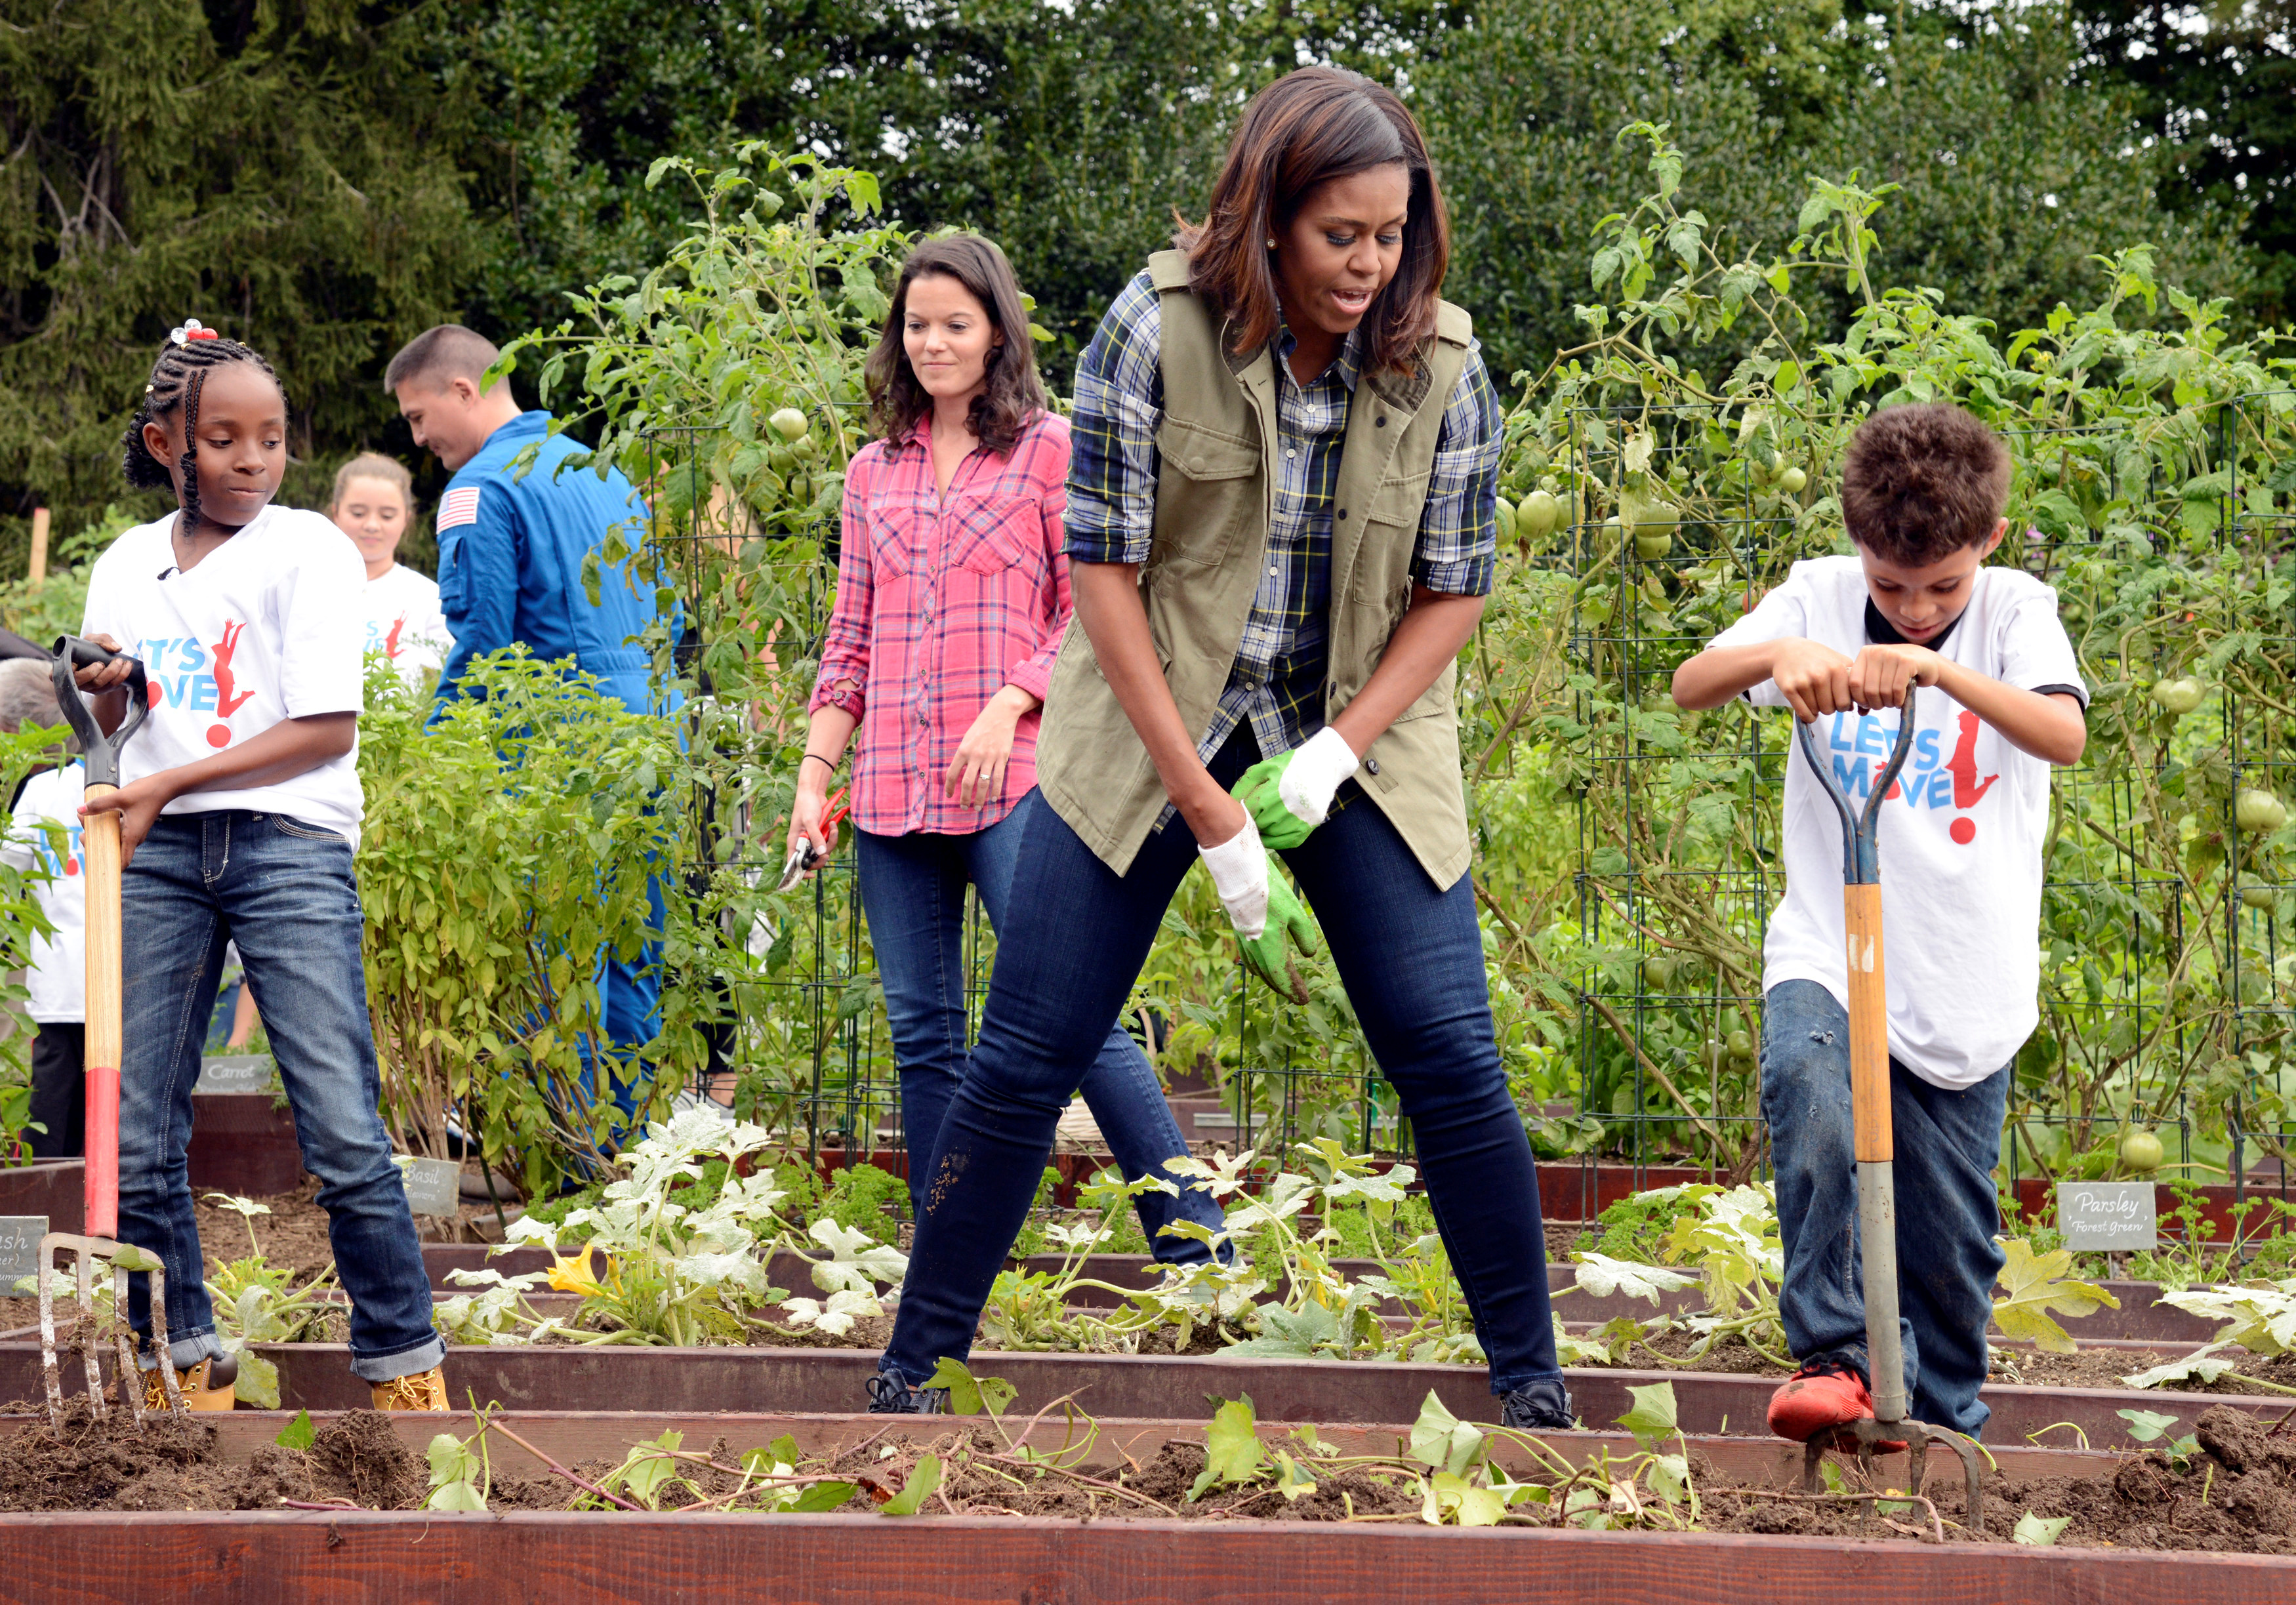 First Lady Michelle Obama encourages a youngster with a pitchfork as they harvest vegetables in the White House Kitchen Garden in Washington